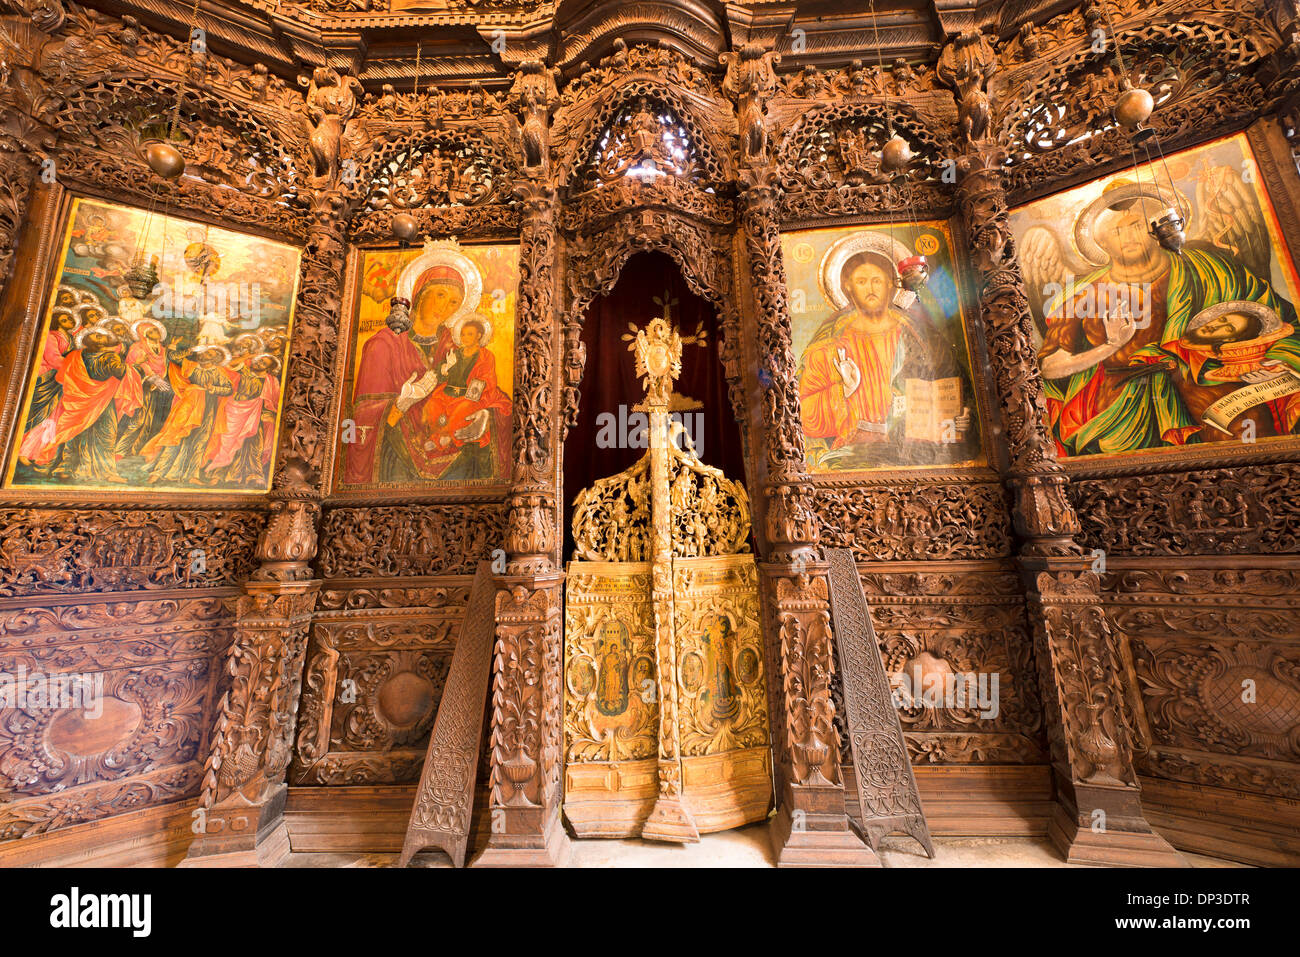 Church of Saint Spas Skopje Macedonia Western Balkans Region Europe Frescoes and carved iconostases wood carvings 17th Century - Stock Image